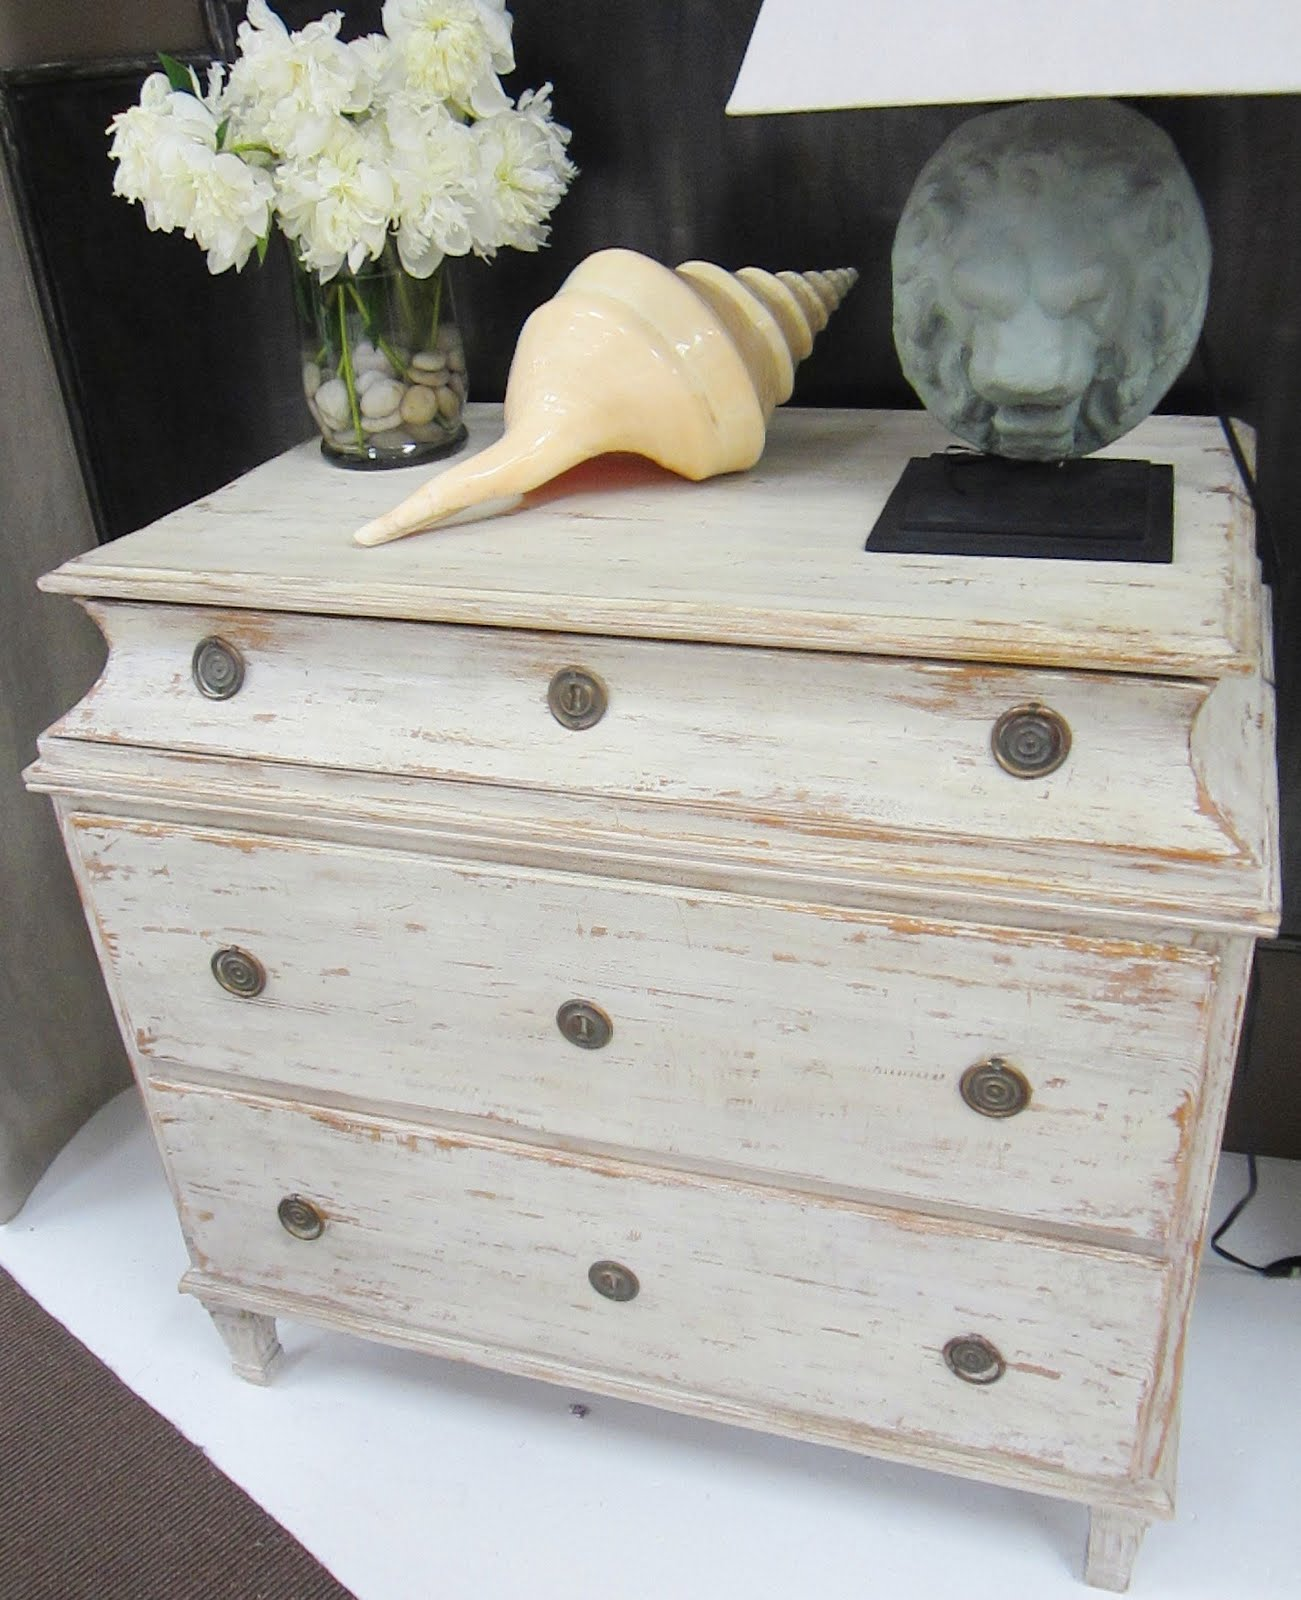 Attirant Swedish 3 Drawer Chest By Tara Shaw Maison With A Large Sea Shell, Flower  Arragement